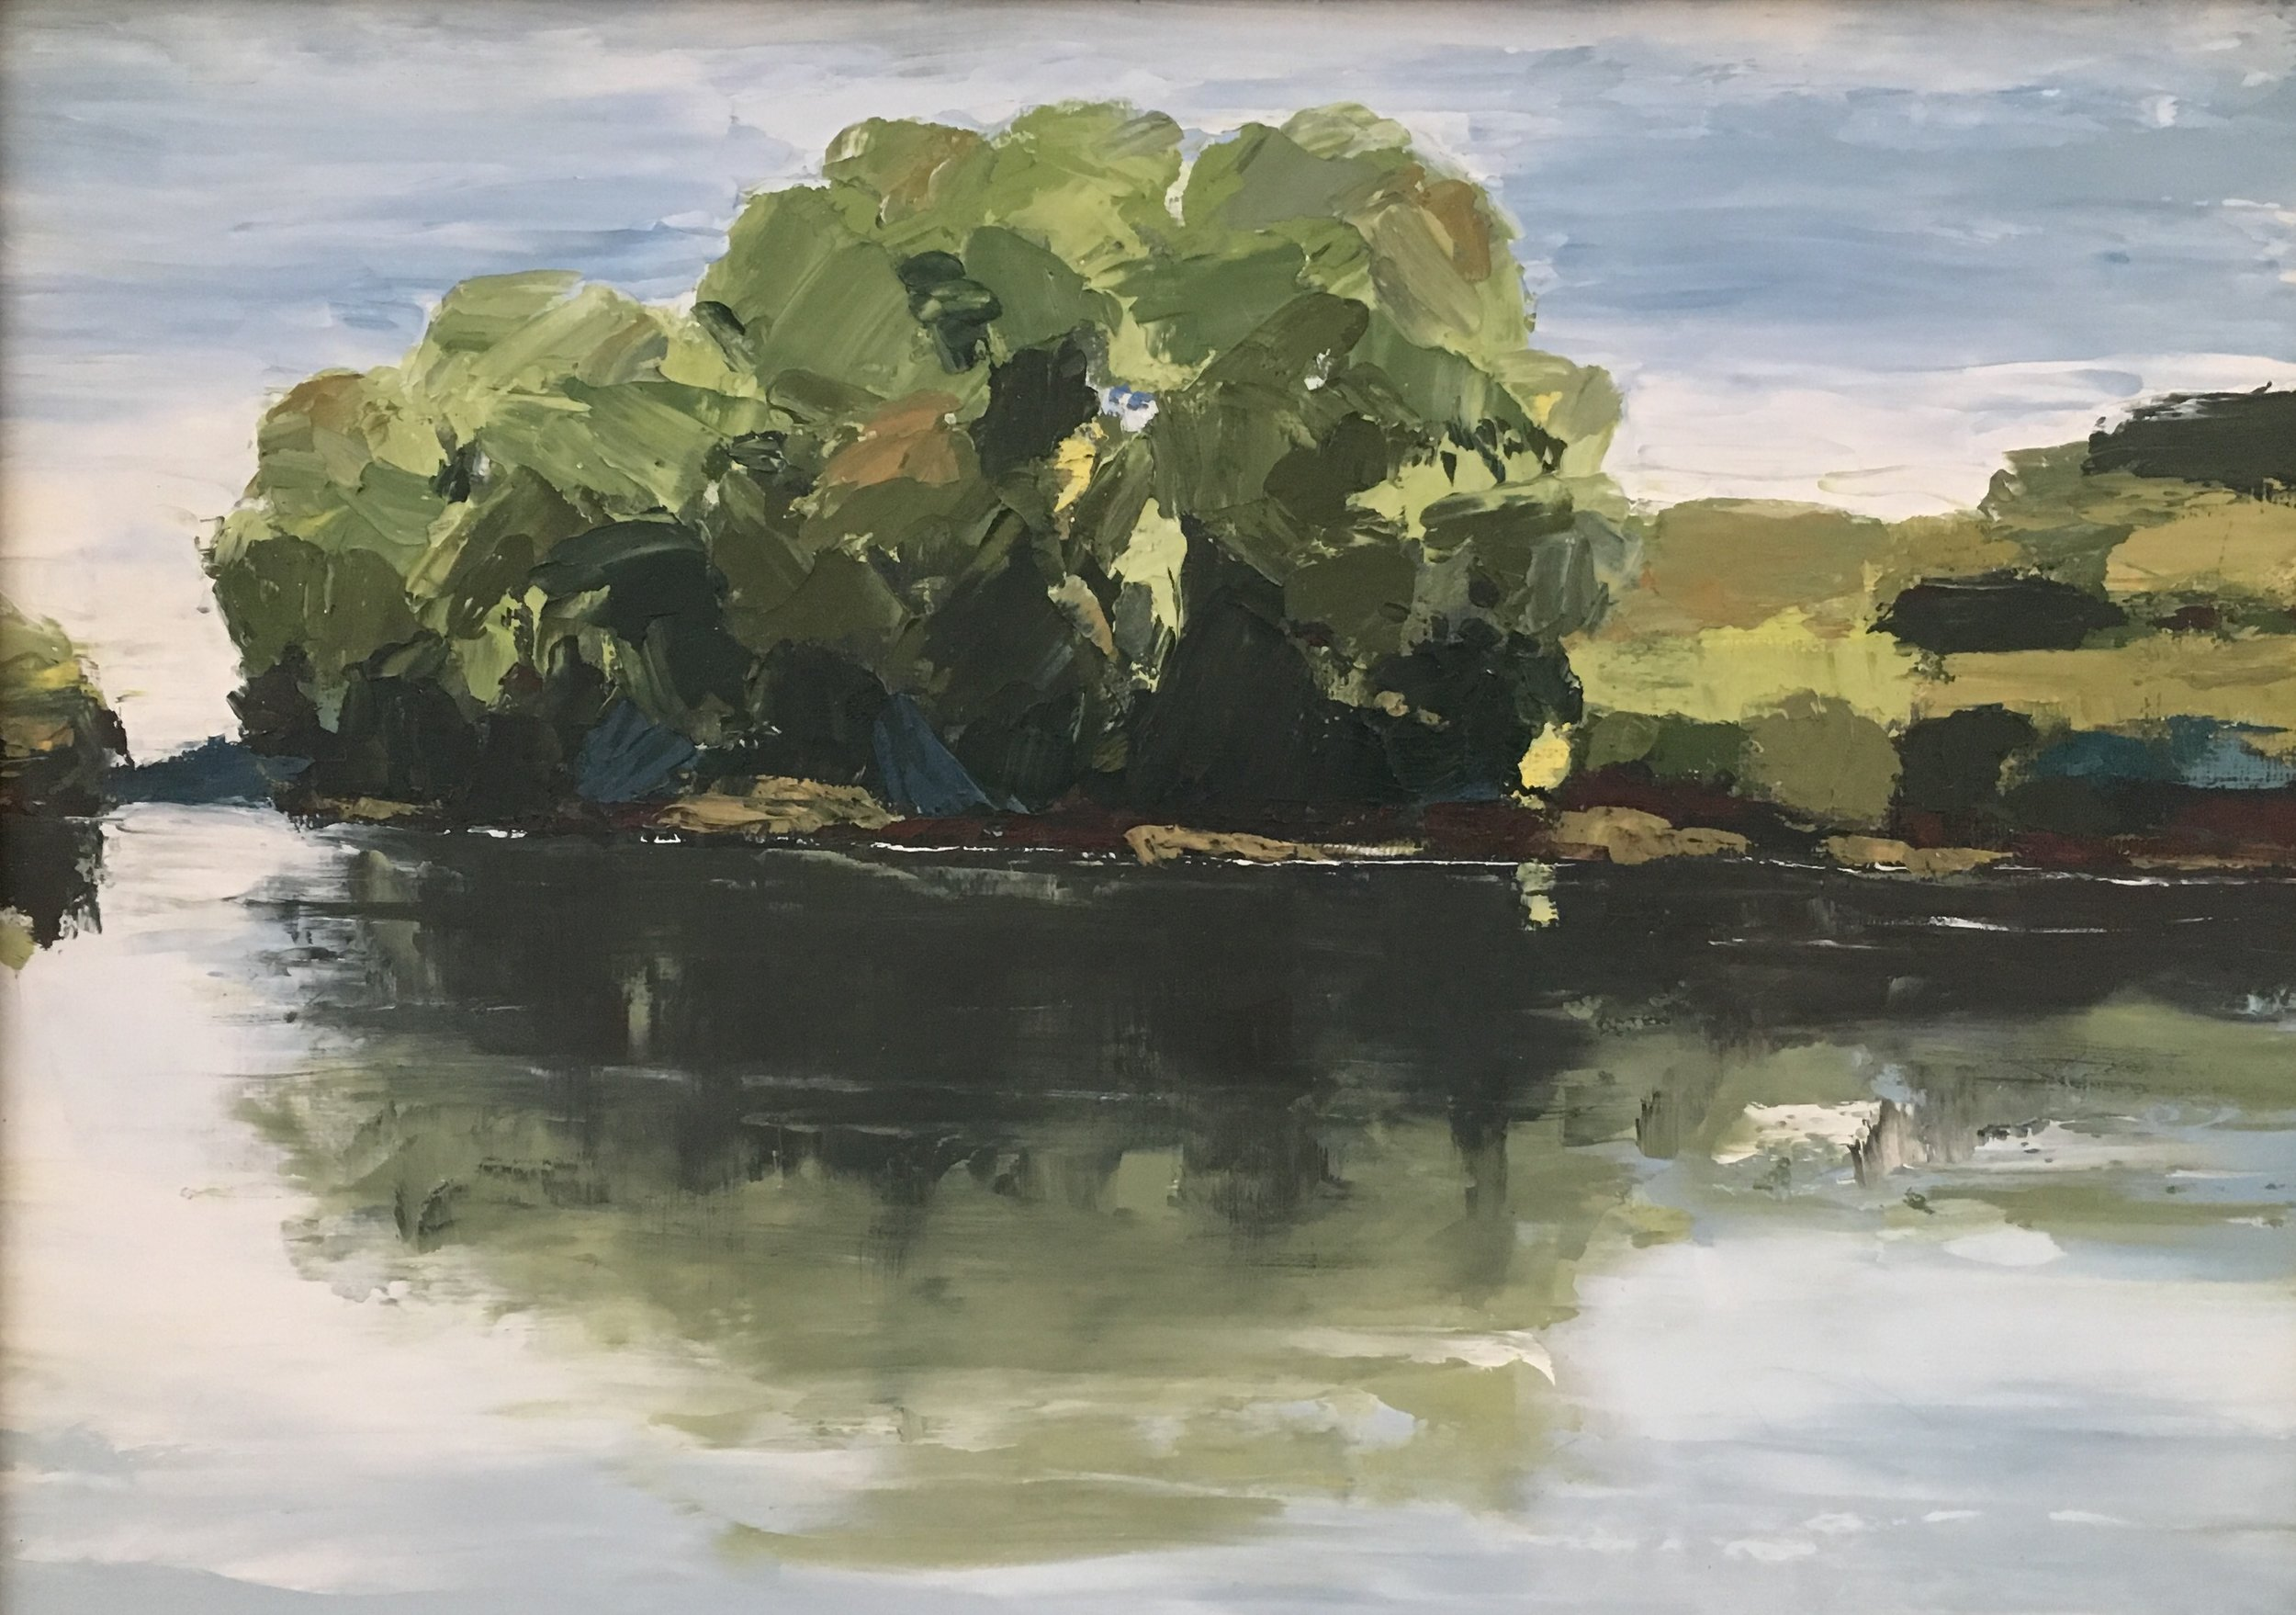 Reflections, Shenandoah River; oil on canvas; 11 x 14